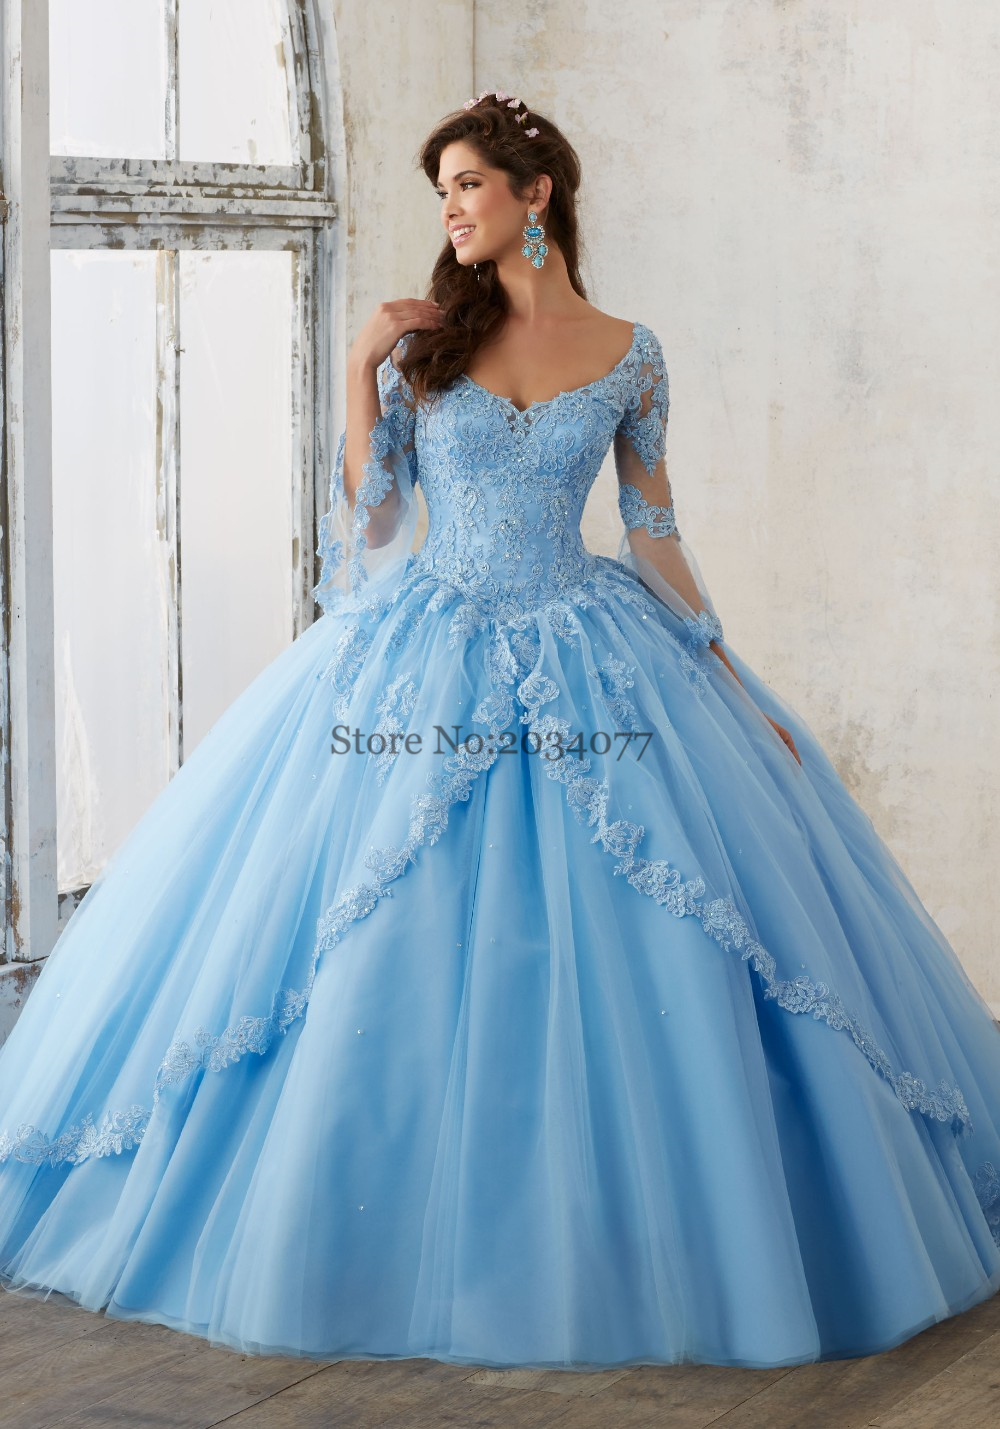 Pink Baby Blue Quinceanera Dresses Lace Long Sleeve Masquerade Ball ...